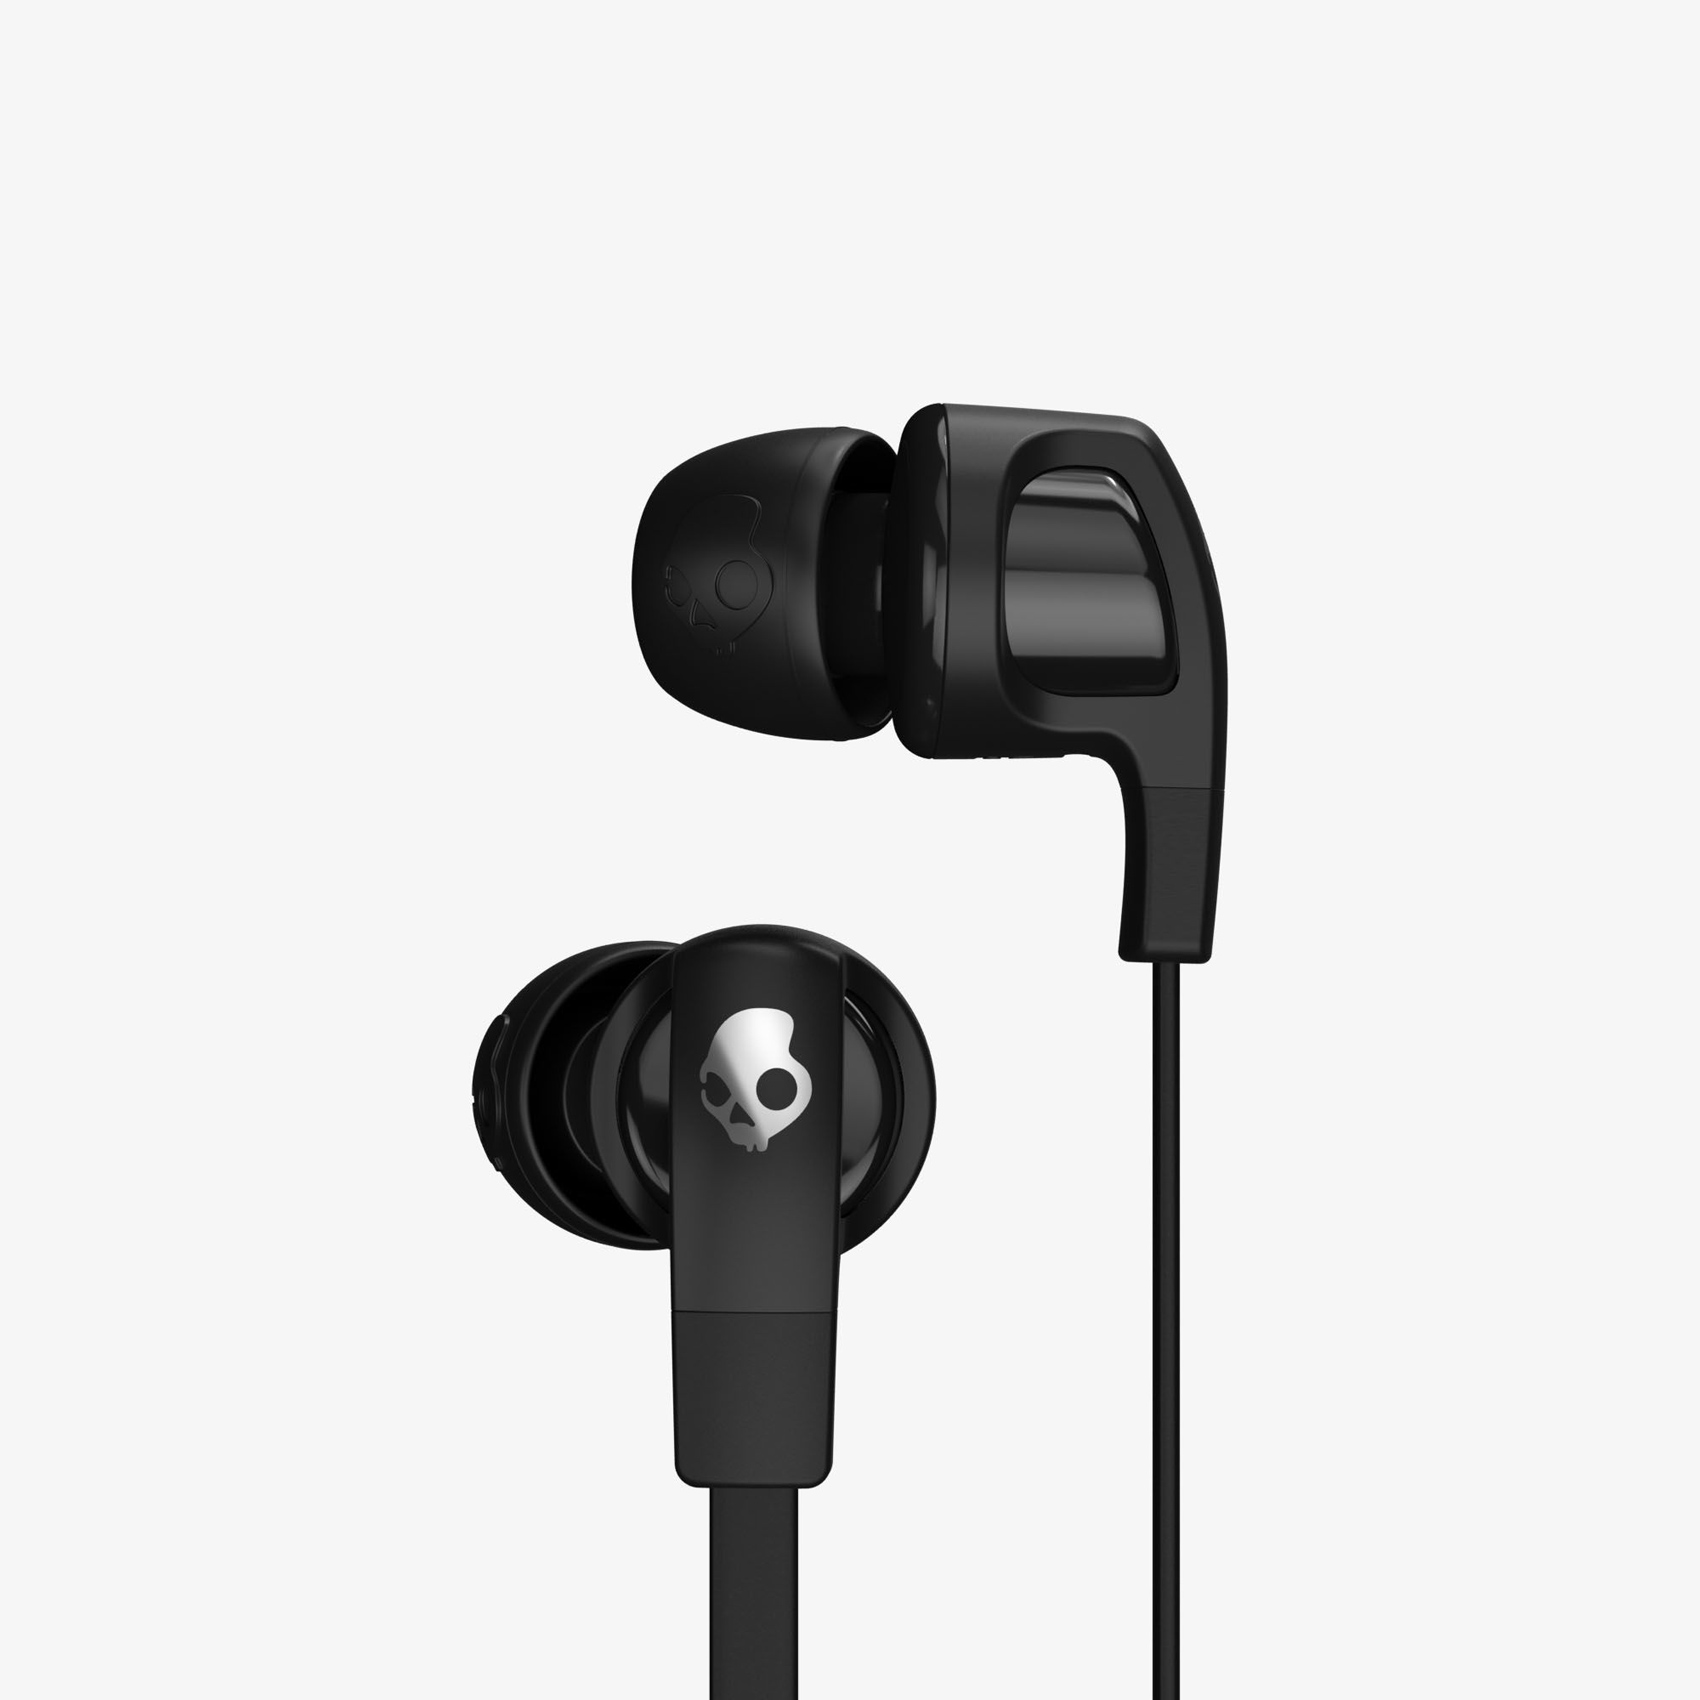 skullcandy bluetooth headphones smokin bud 2 wireless ear buds microphone ebay. Black Bedroom Furniture Sets. Home Design Ideas